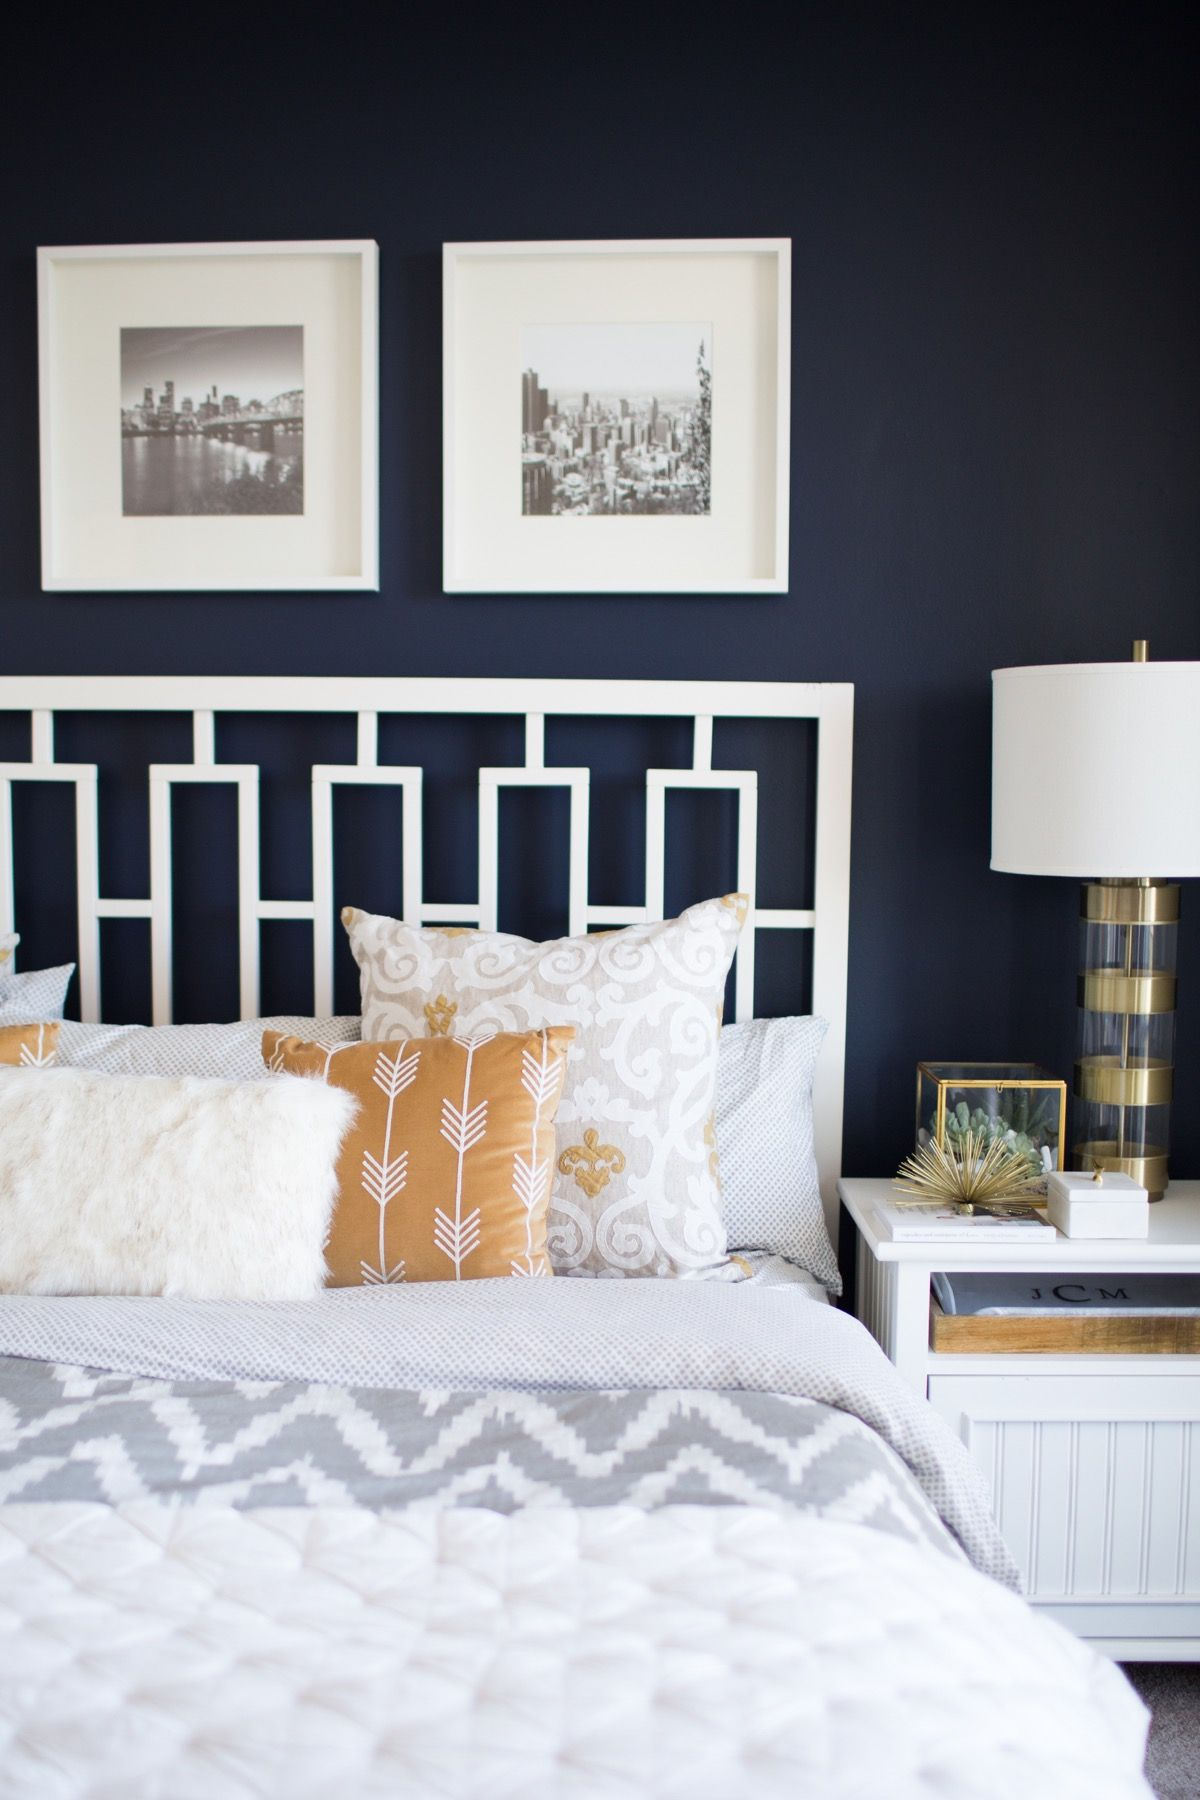 A Look Inside A Blogger S Navy And Mustard Bedroom Navy Bedroom Walls Wall Decor Bedroom Feature Wall Bedroom